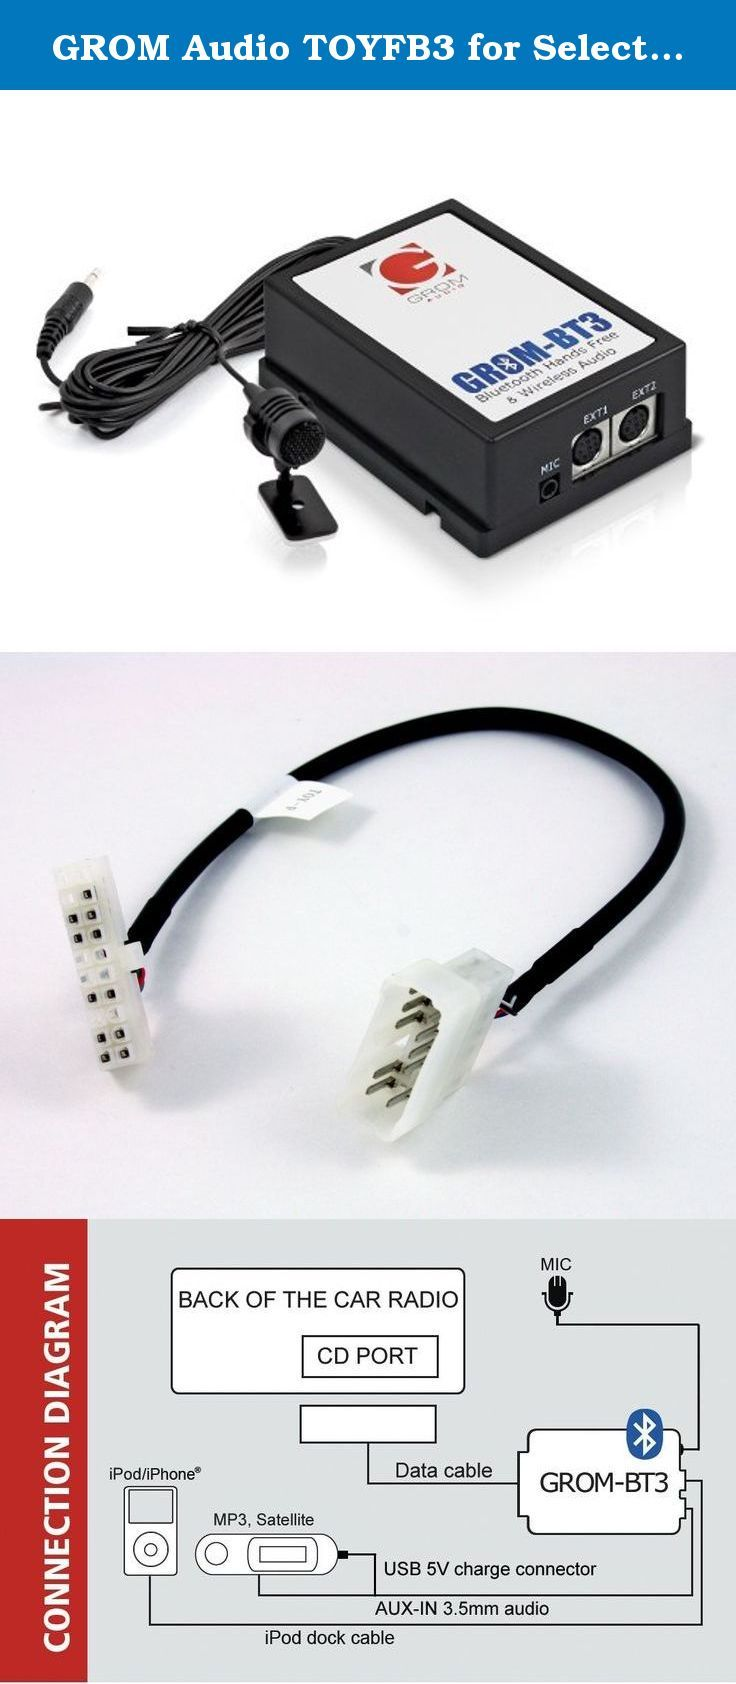 medium resolution of grom audio toyfb3 for select lexus non nakamichi stereo bluetooth adapter auxiliary android ipod